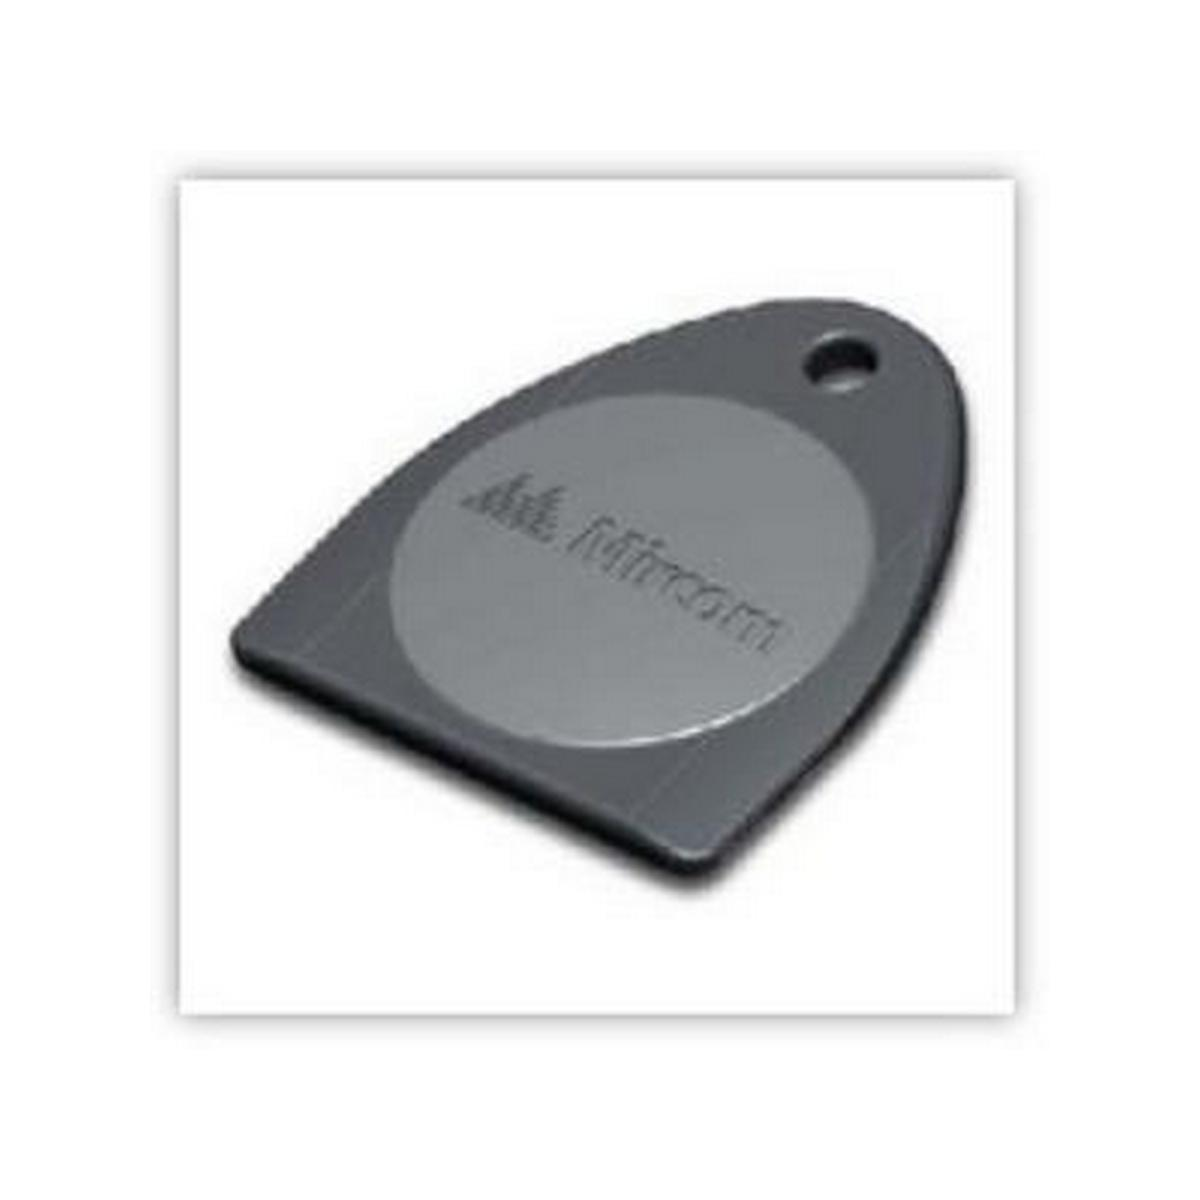 Mircom KT-MIR-0-0  Proximity key tag- must be ordered in lots of 10, priced per each